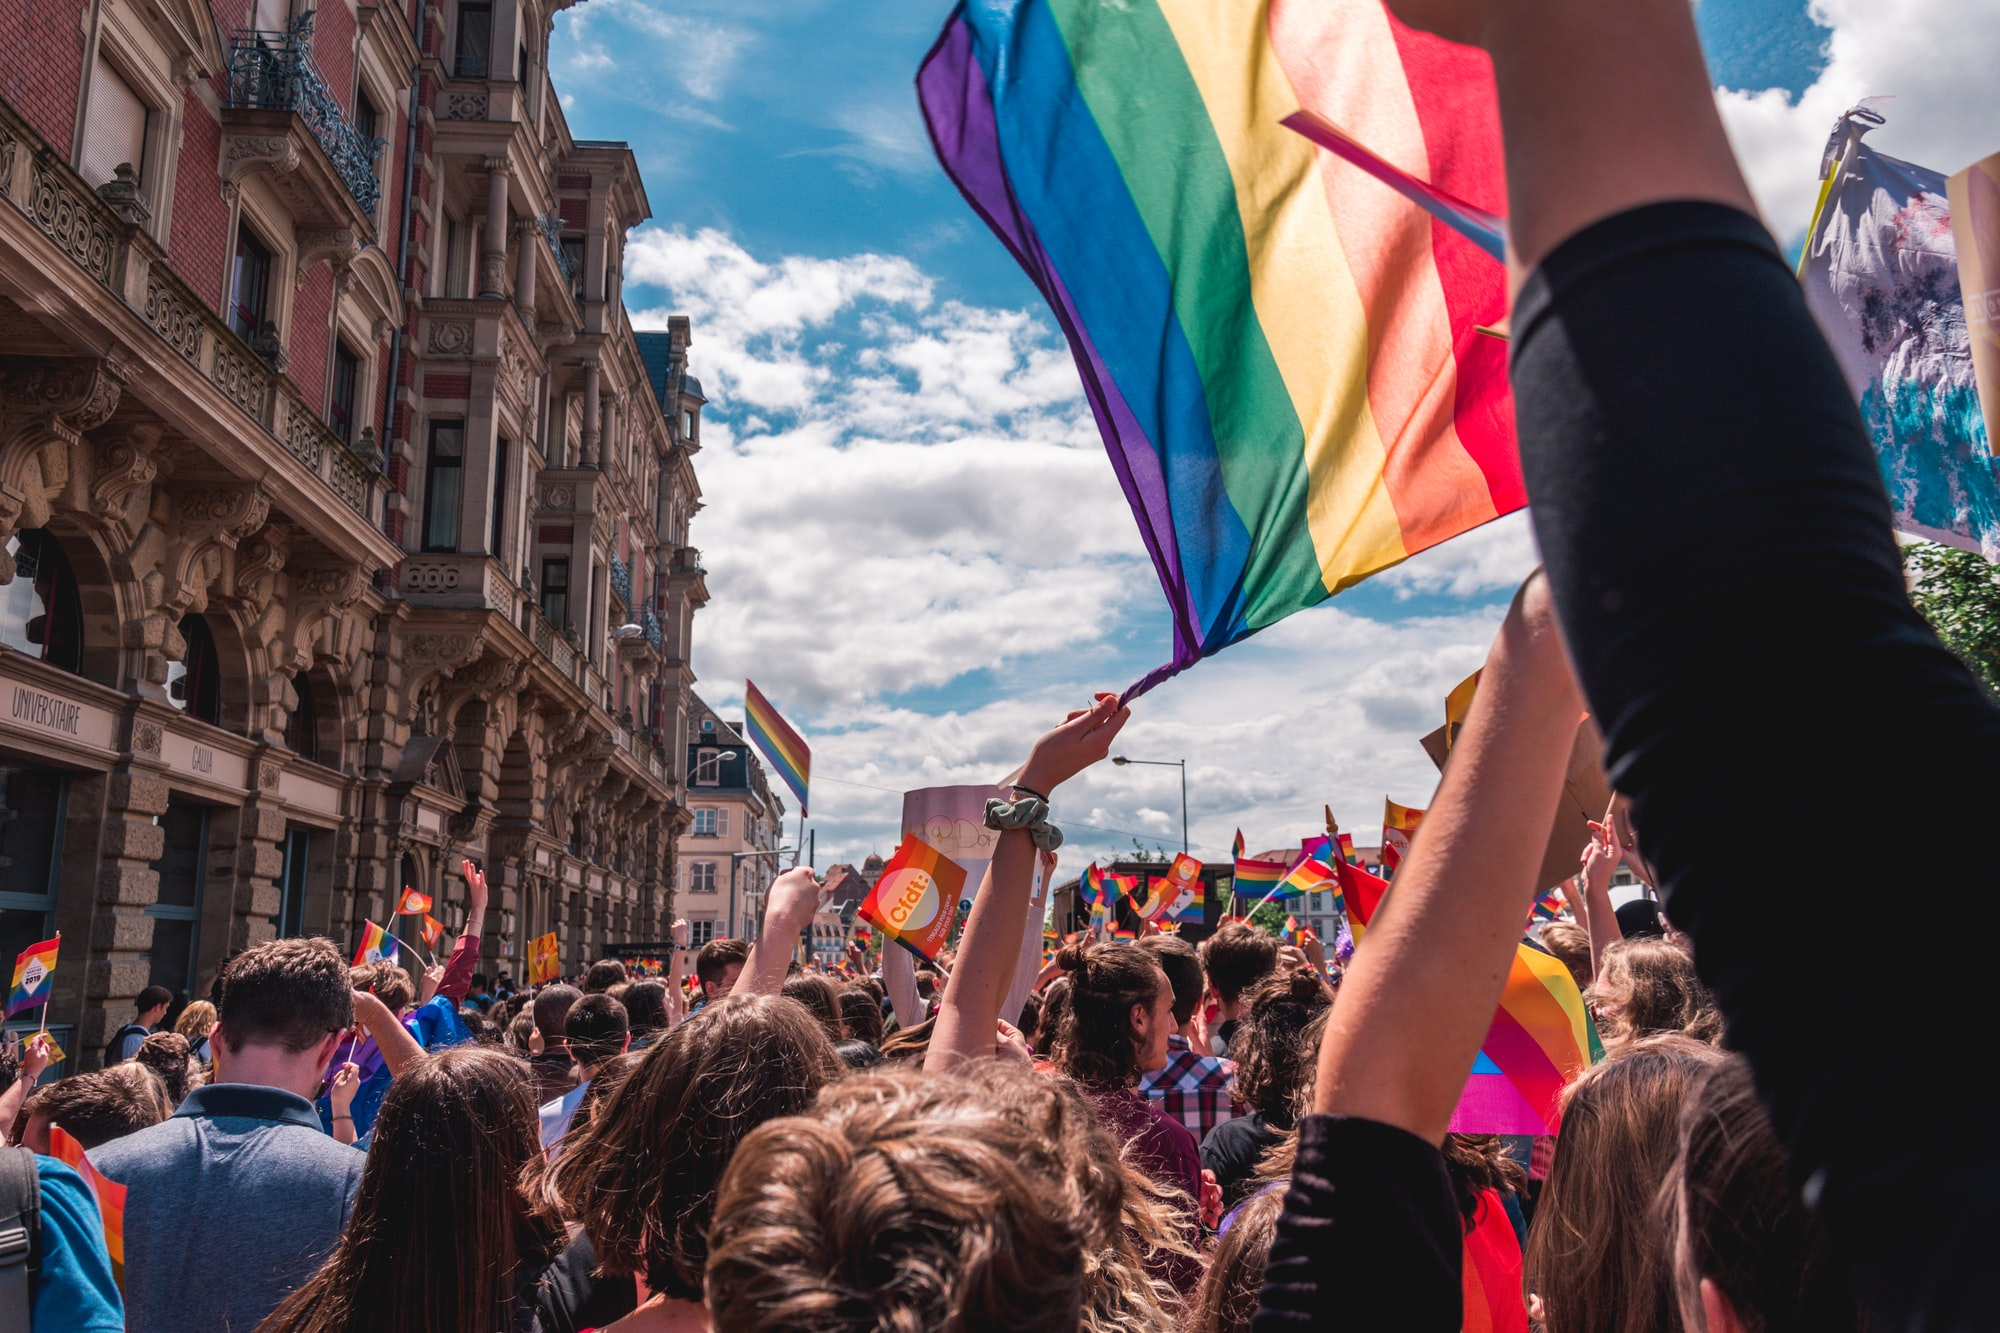 Crowd of people at a LGBTQIA+ rights parade. In the center of the photograph there is an individual holding a pride flag.